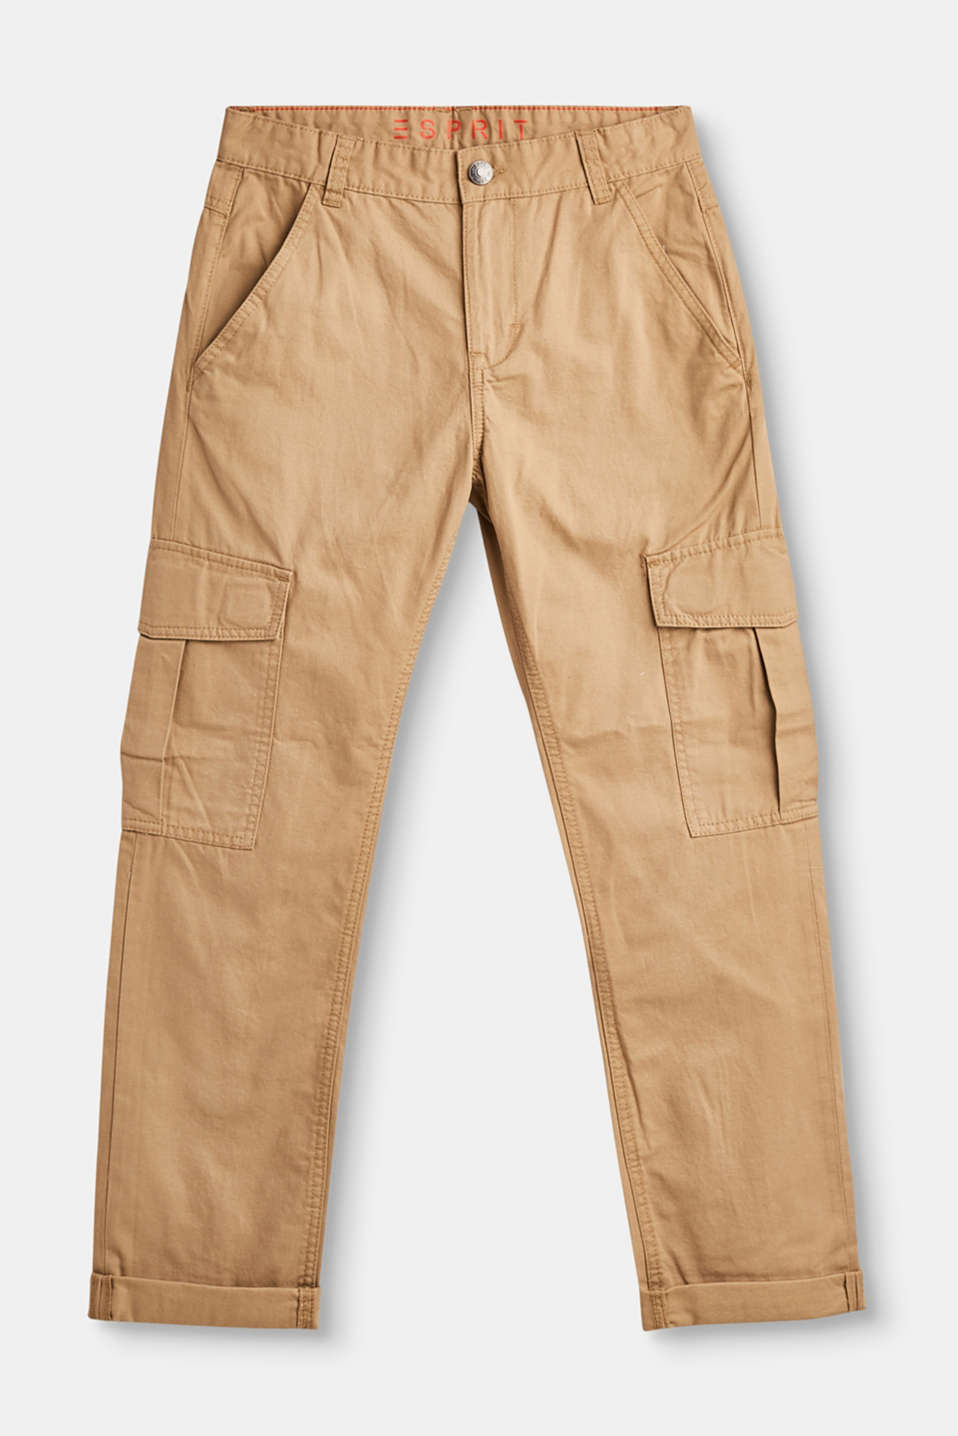 Esprit - Adjustable trousers in 100% cotton